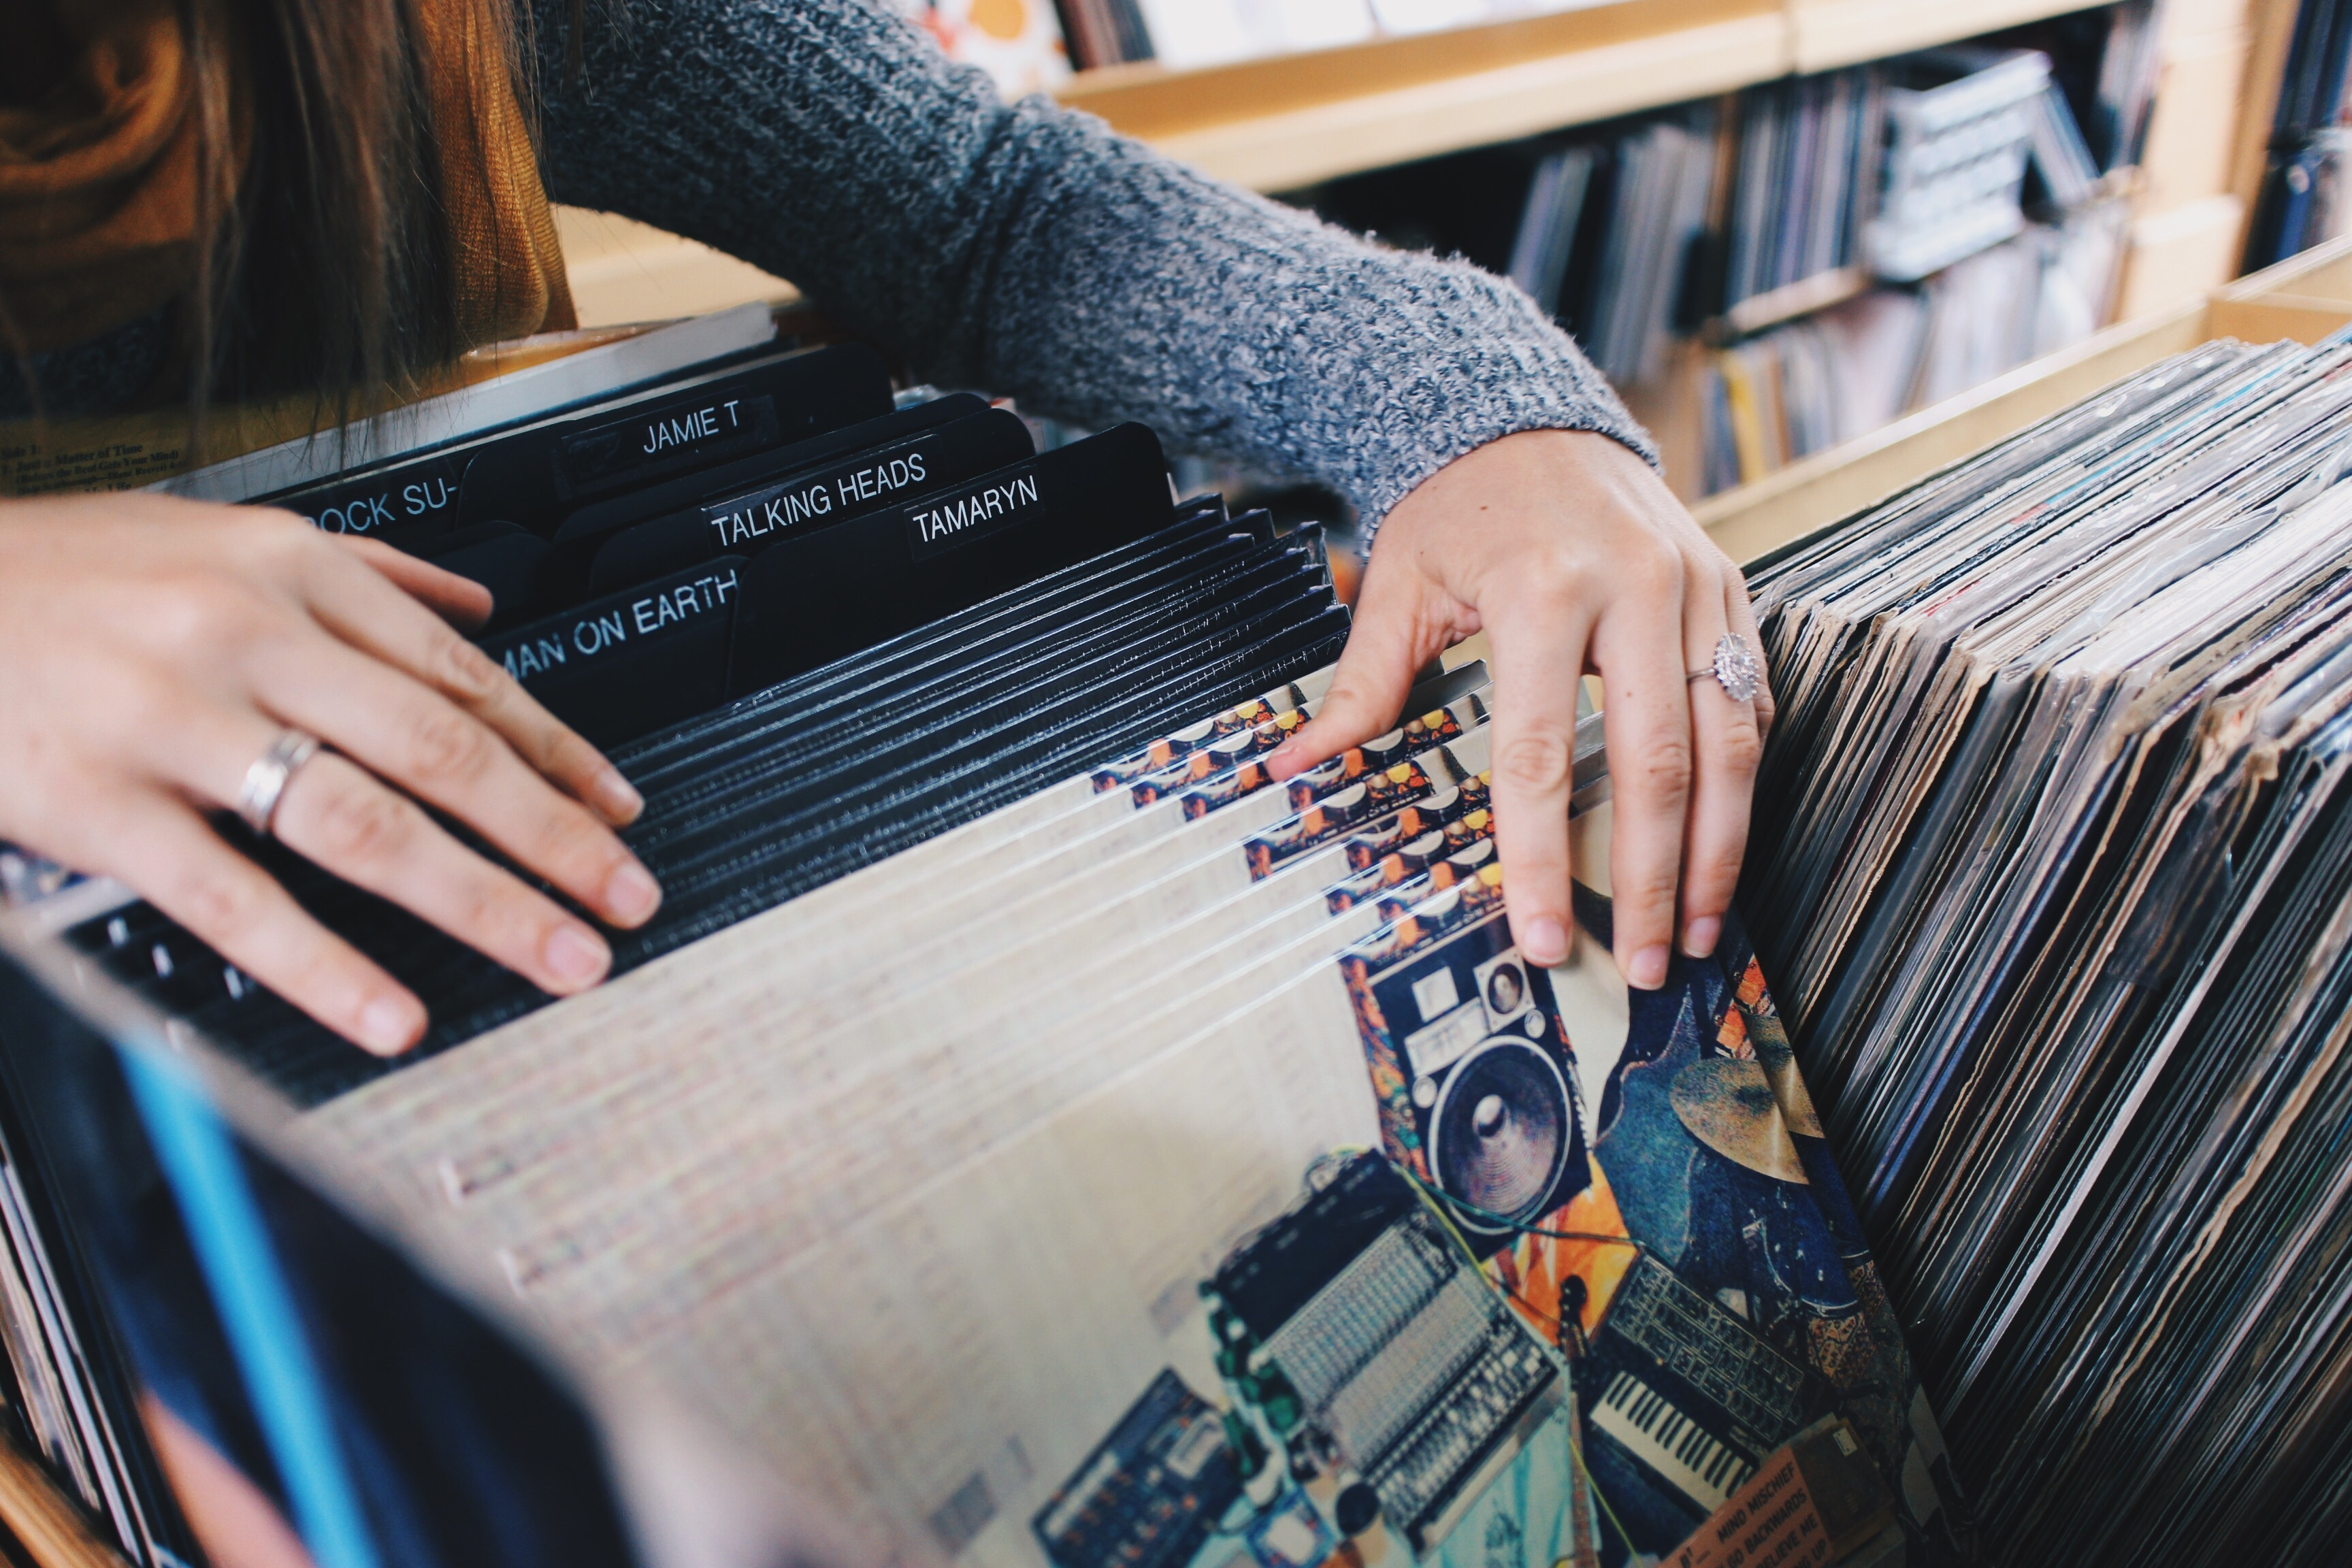 A person sorts through vinyl records at a record store.jpg